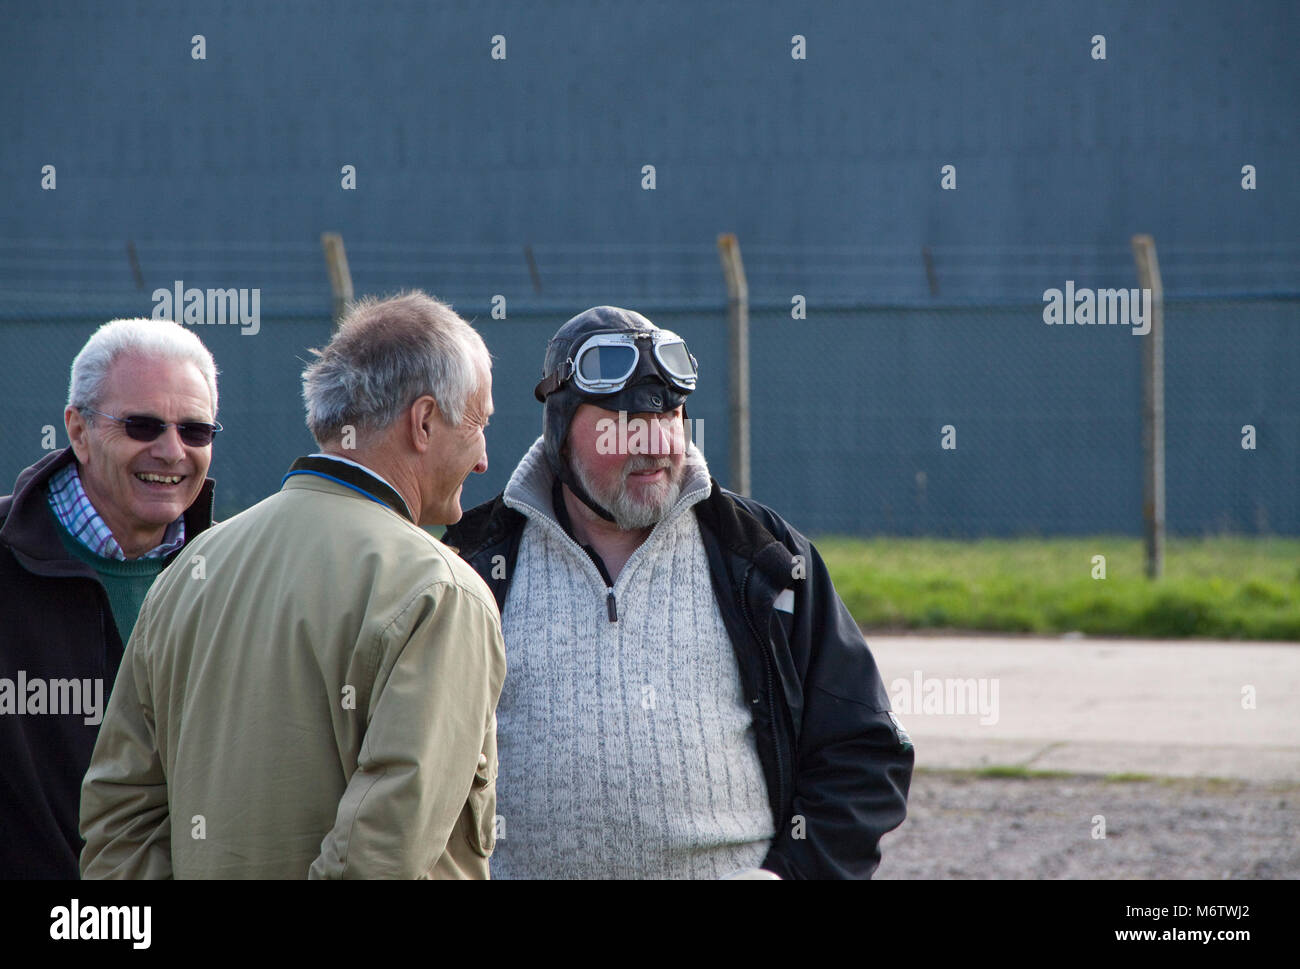 Man wearing an aviator helmet and goggles at Bugatti club meeting - Stock Image